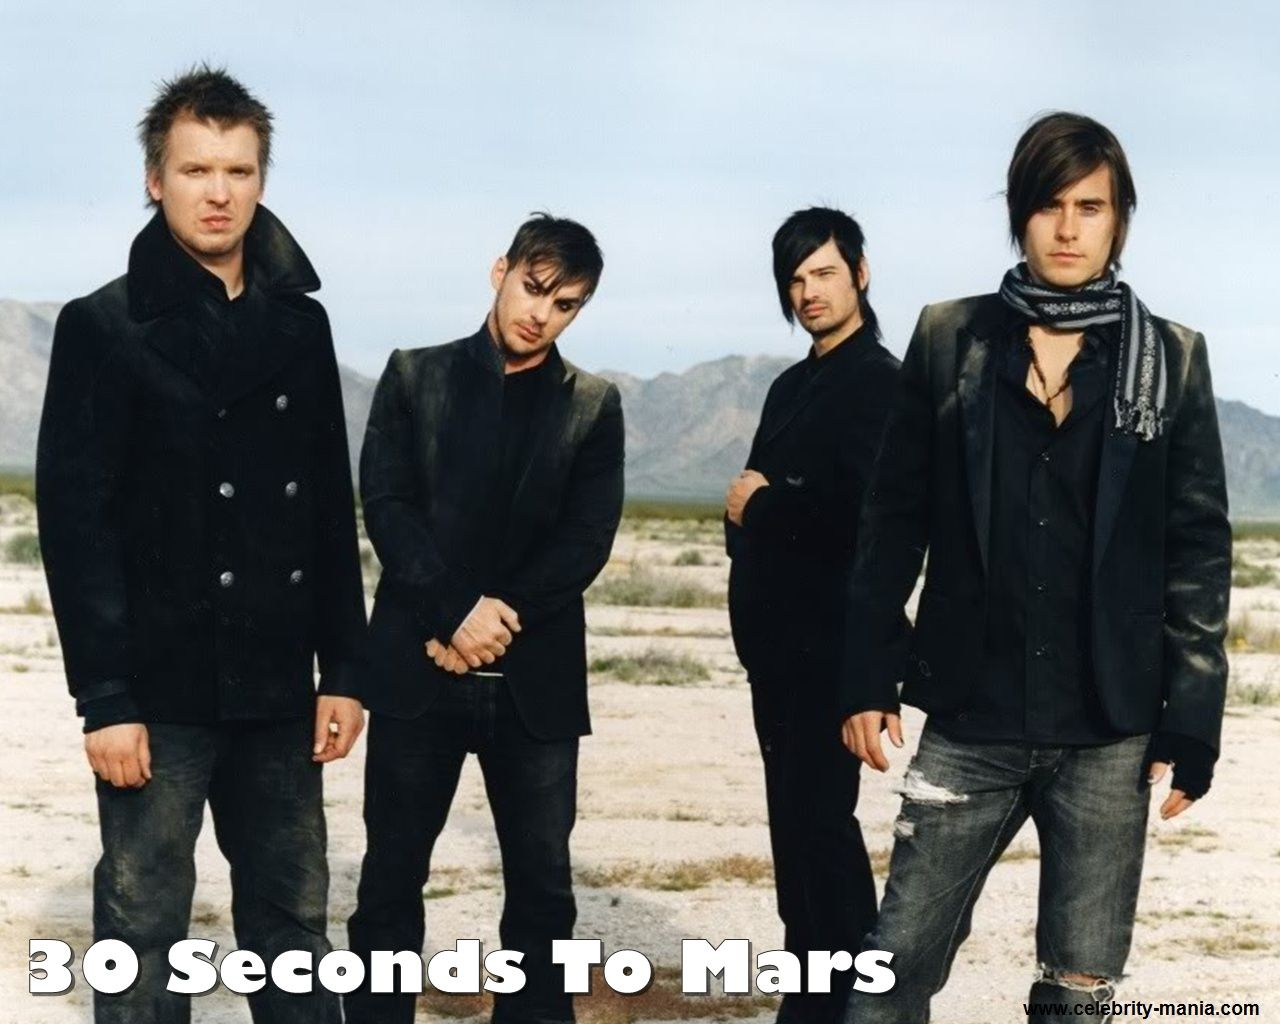 30 seconds to mars | 30 Seconds To Mars Wallpaper Download | 30_seconds_to_mars_8.jpg